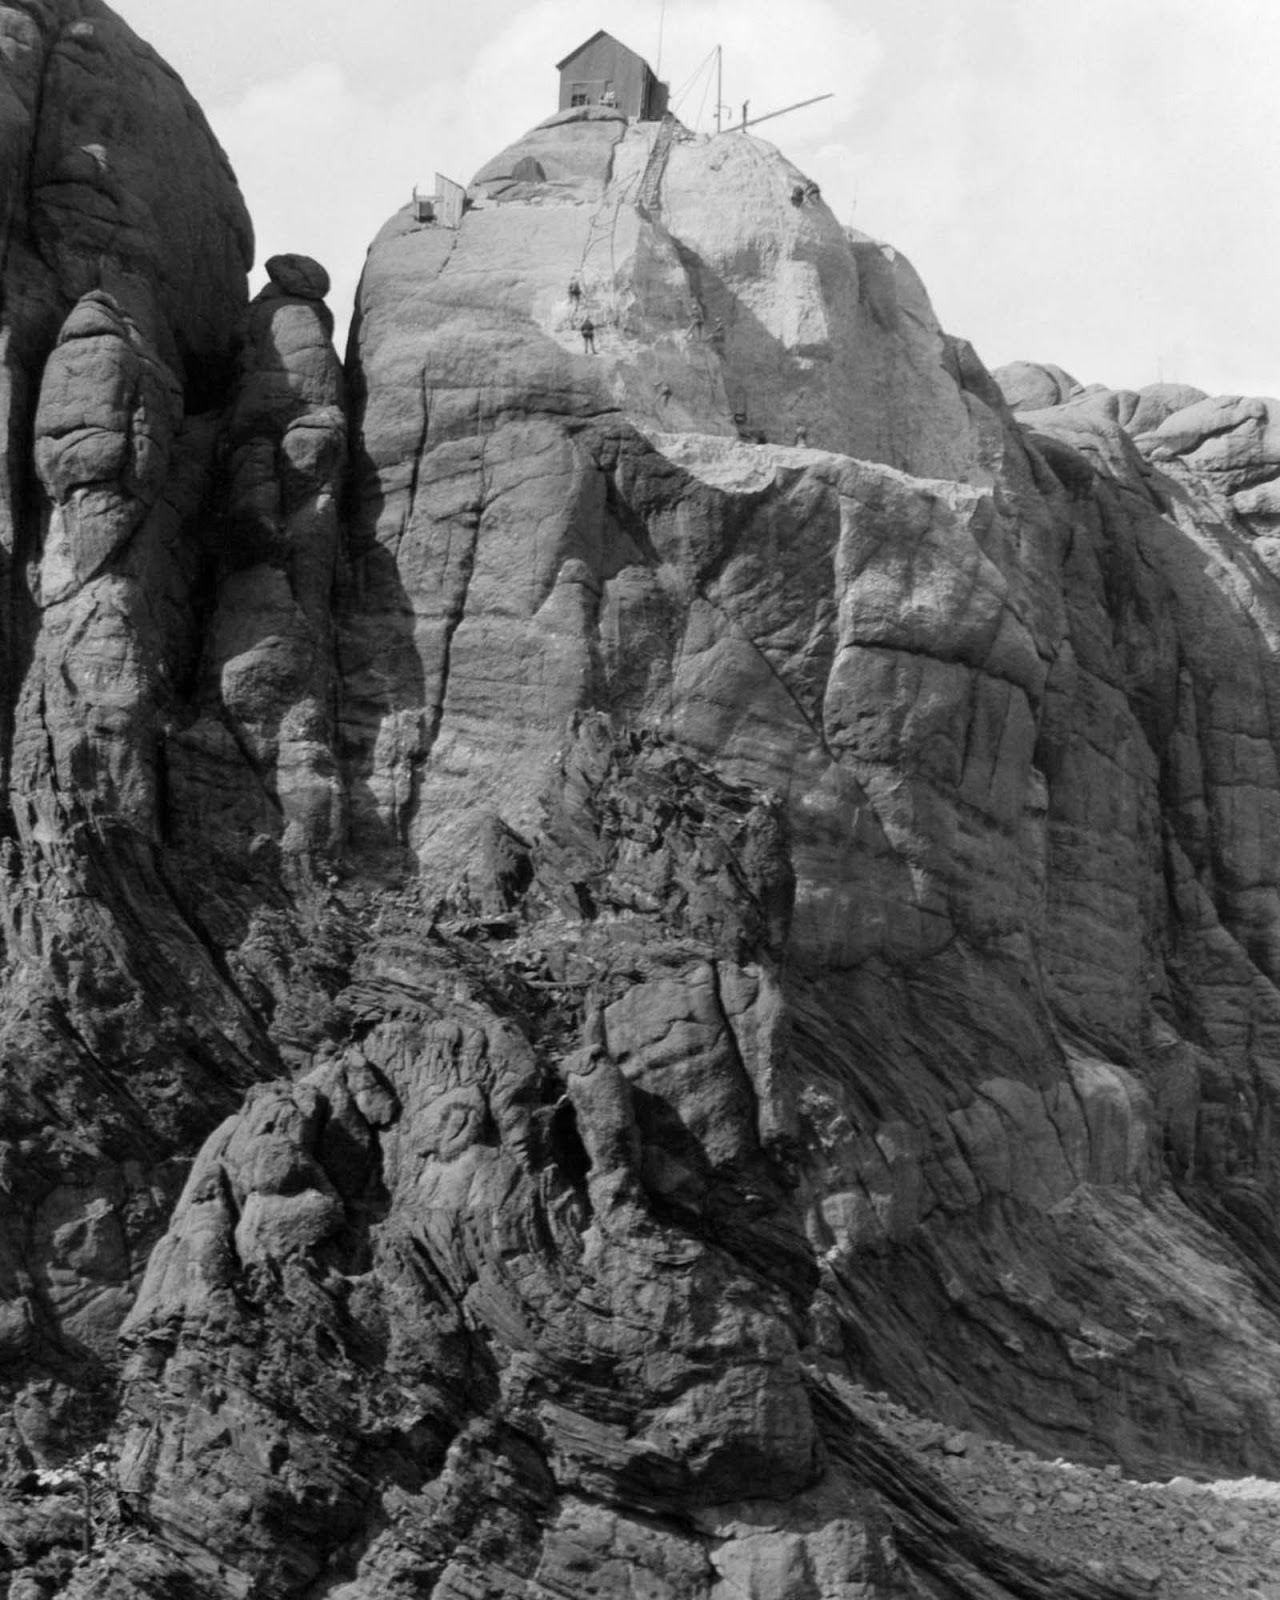 The sculptor and tribal representatives settled on Mount Rushmore, which also has the advantage of facing southeast for maximum sun exposure.